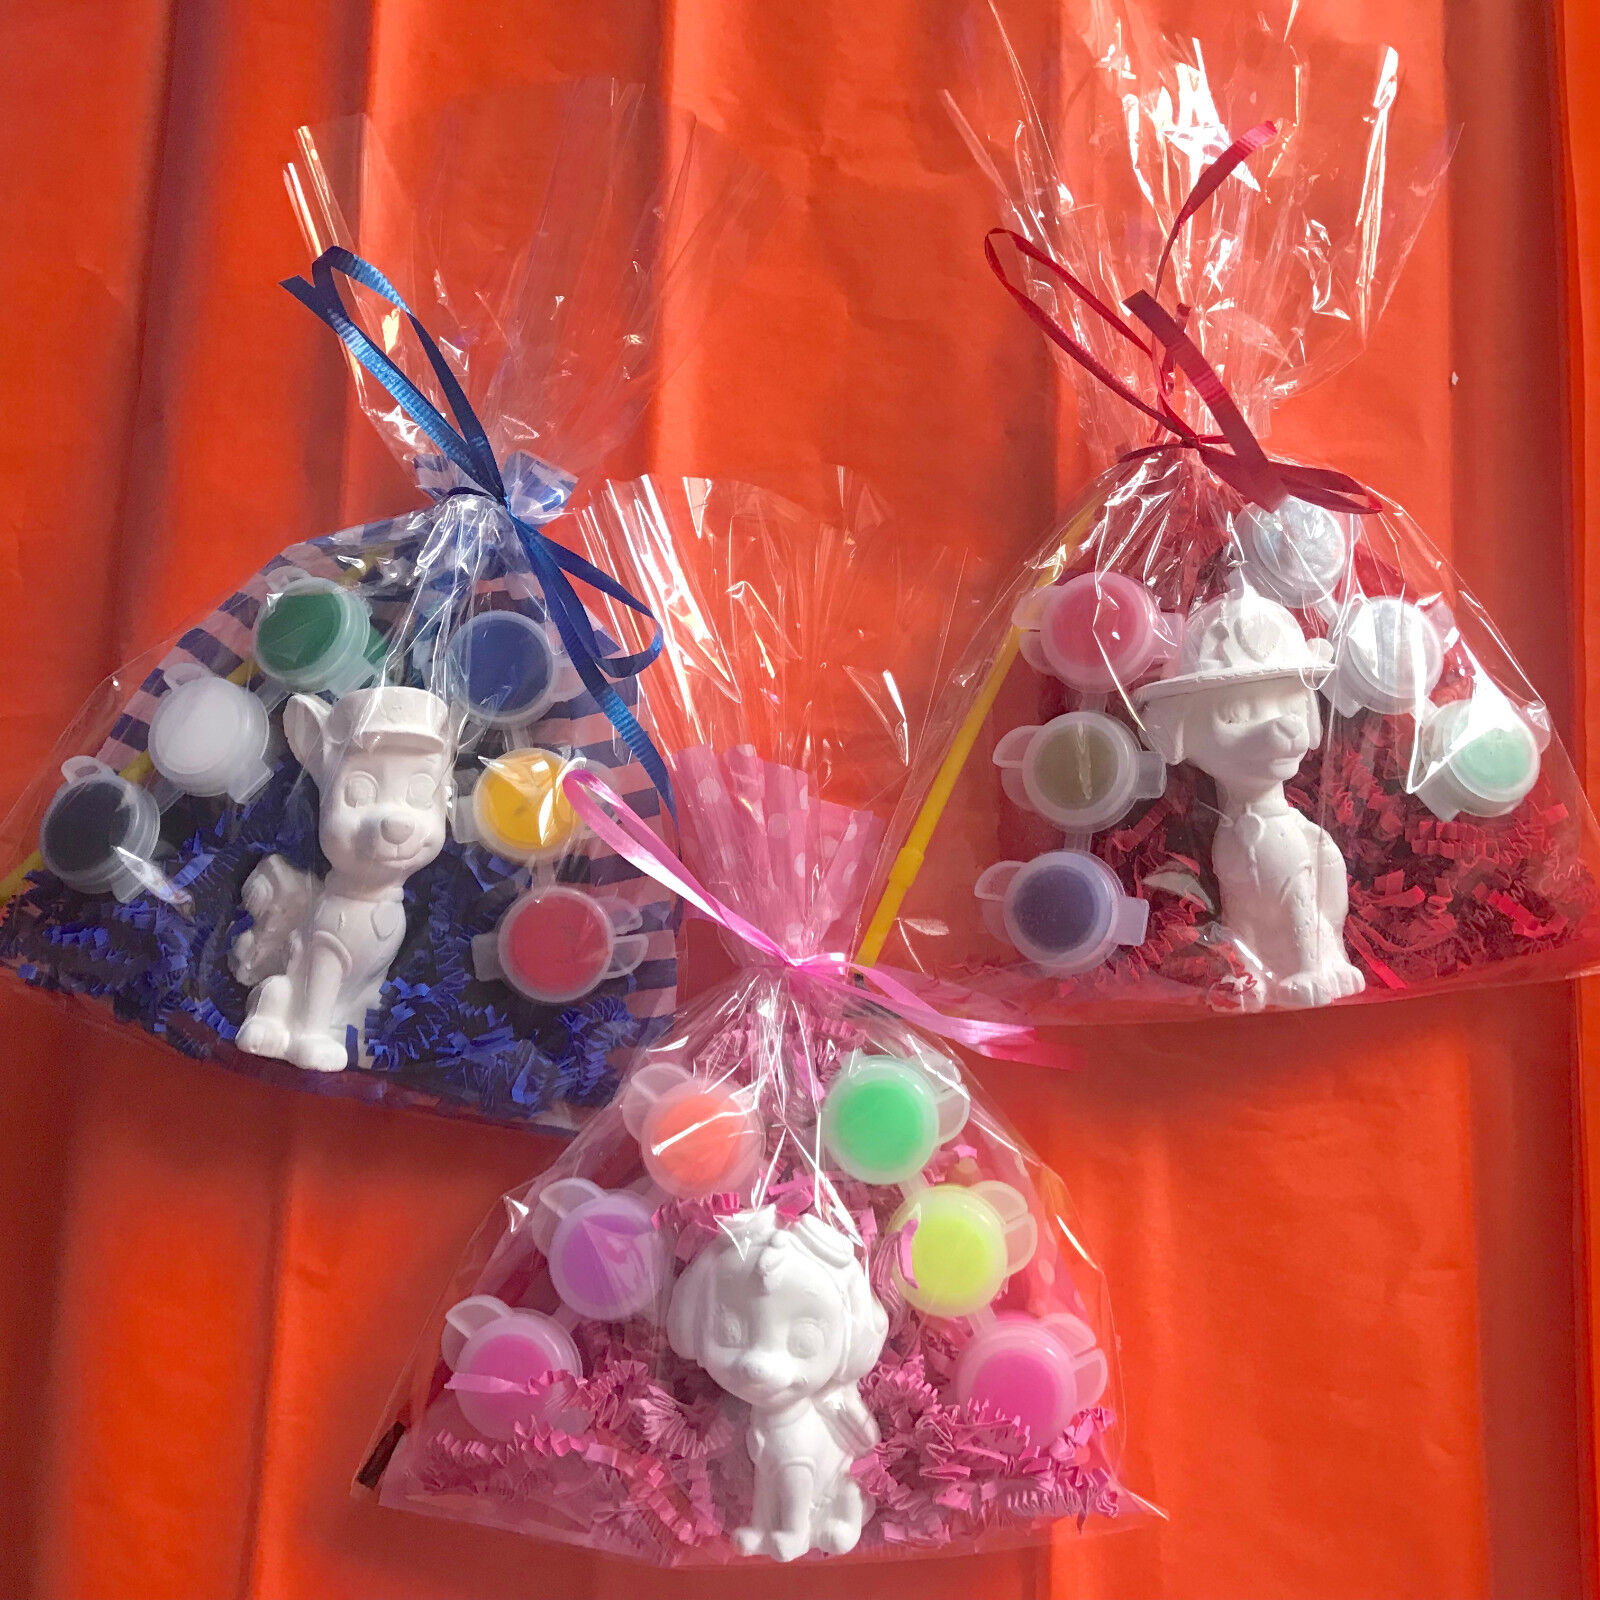 11 Paw patrol assorted party favors.Creative.To paint.1in a bag.PRICE PER 11 BAG